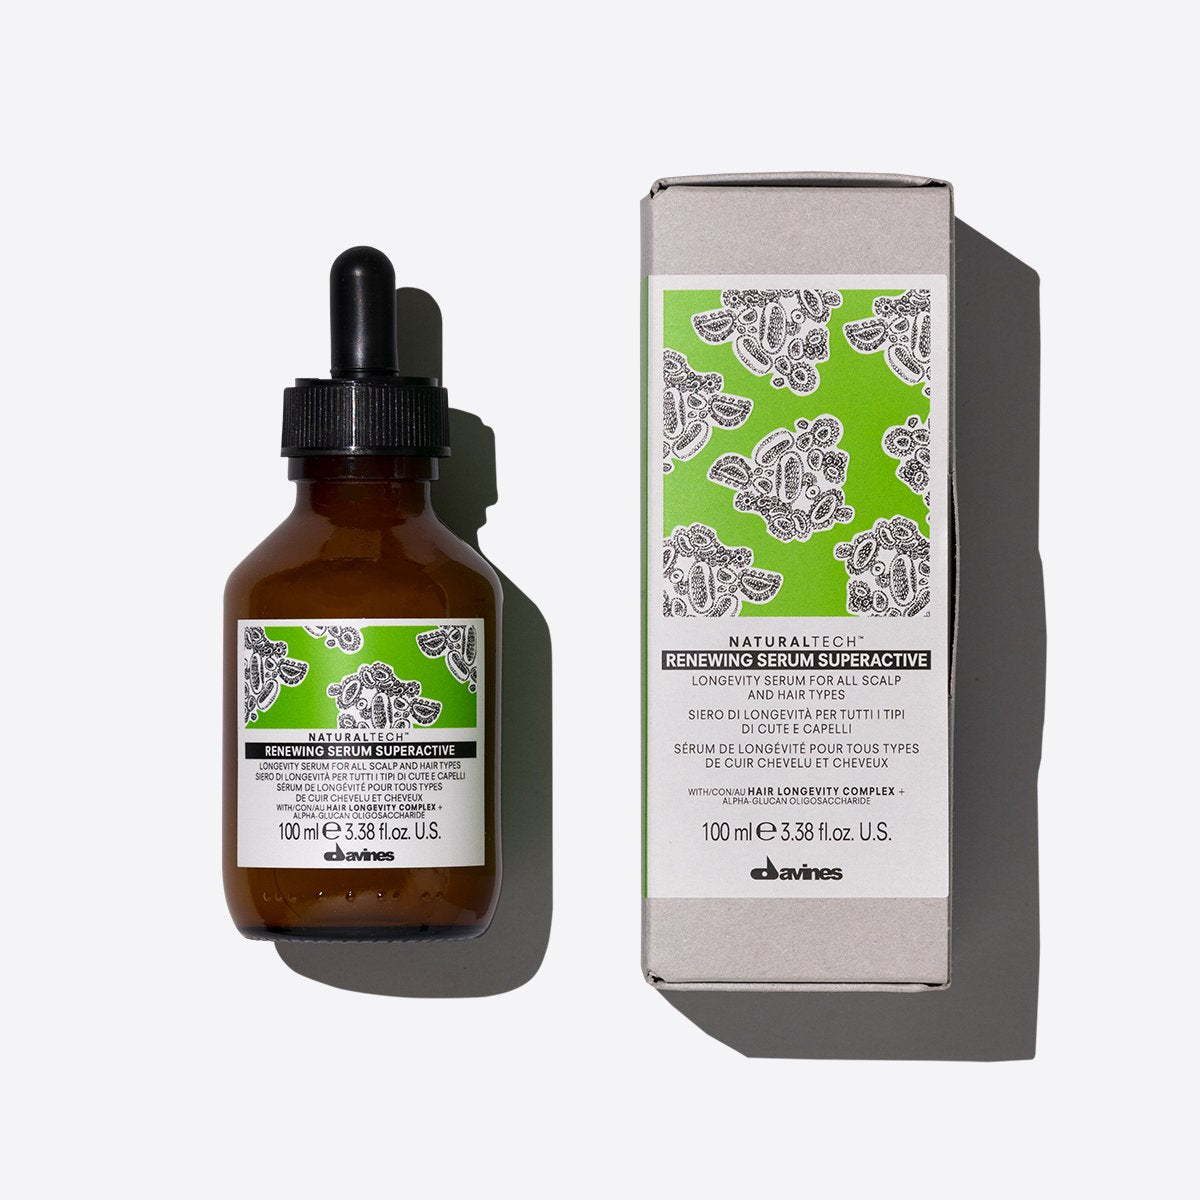 Naturaltech Renewing Serum Superactive by Davines